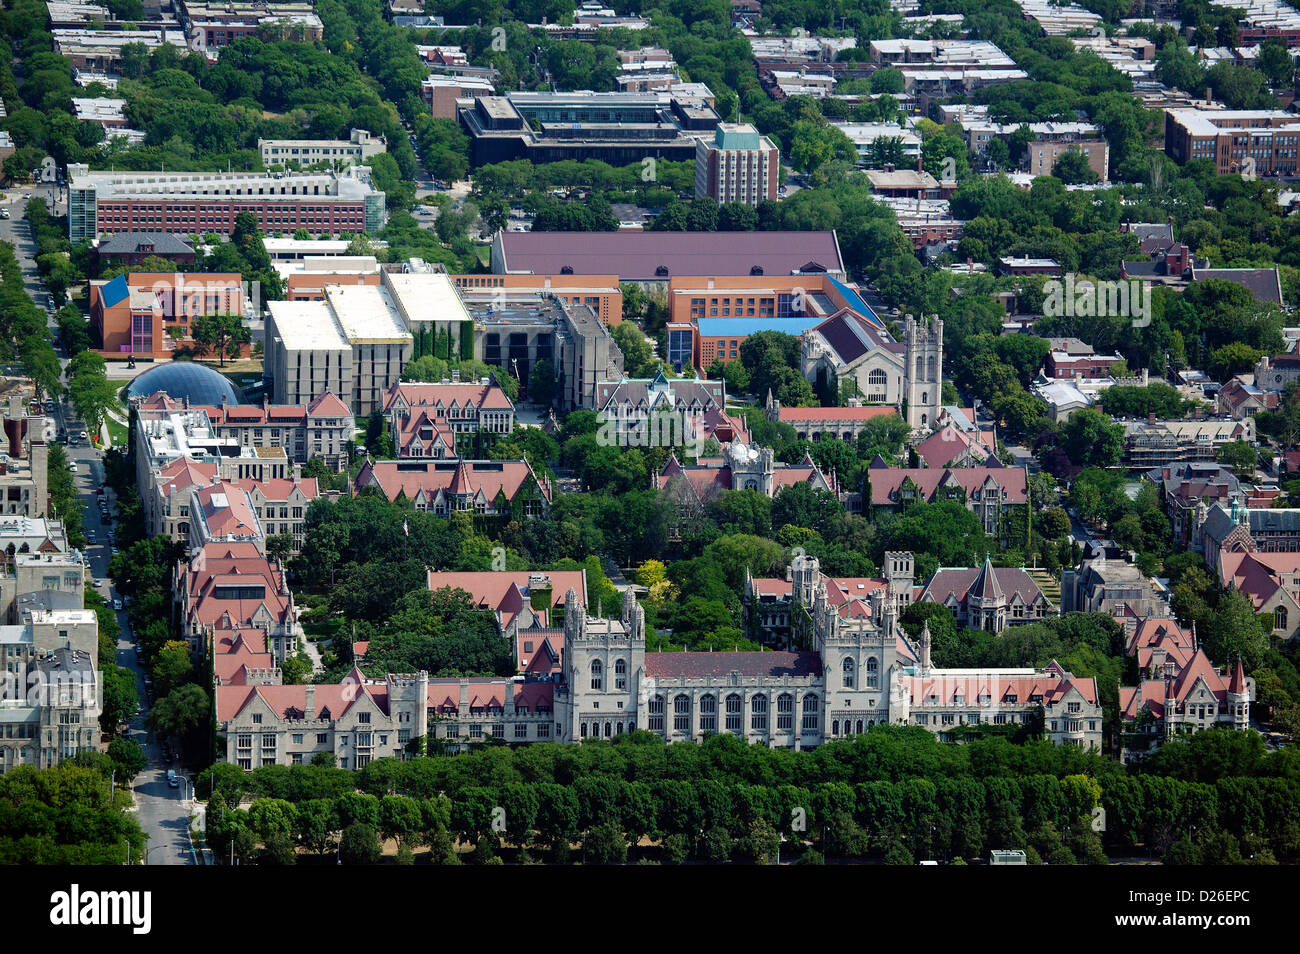 aerial photograph University of Chicago, Illinois - Stock Image